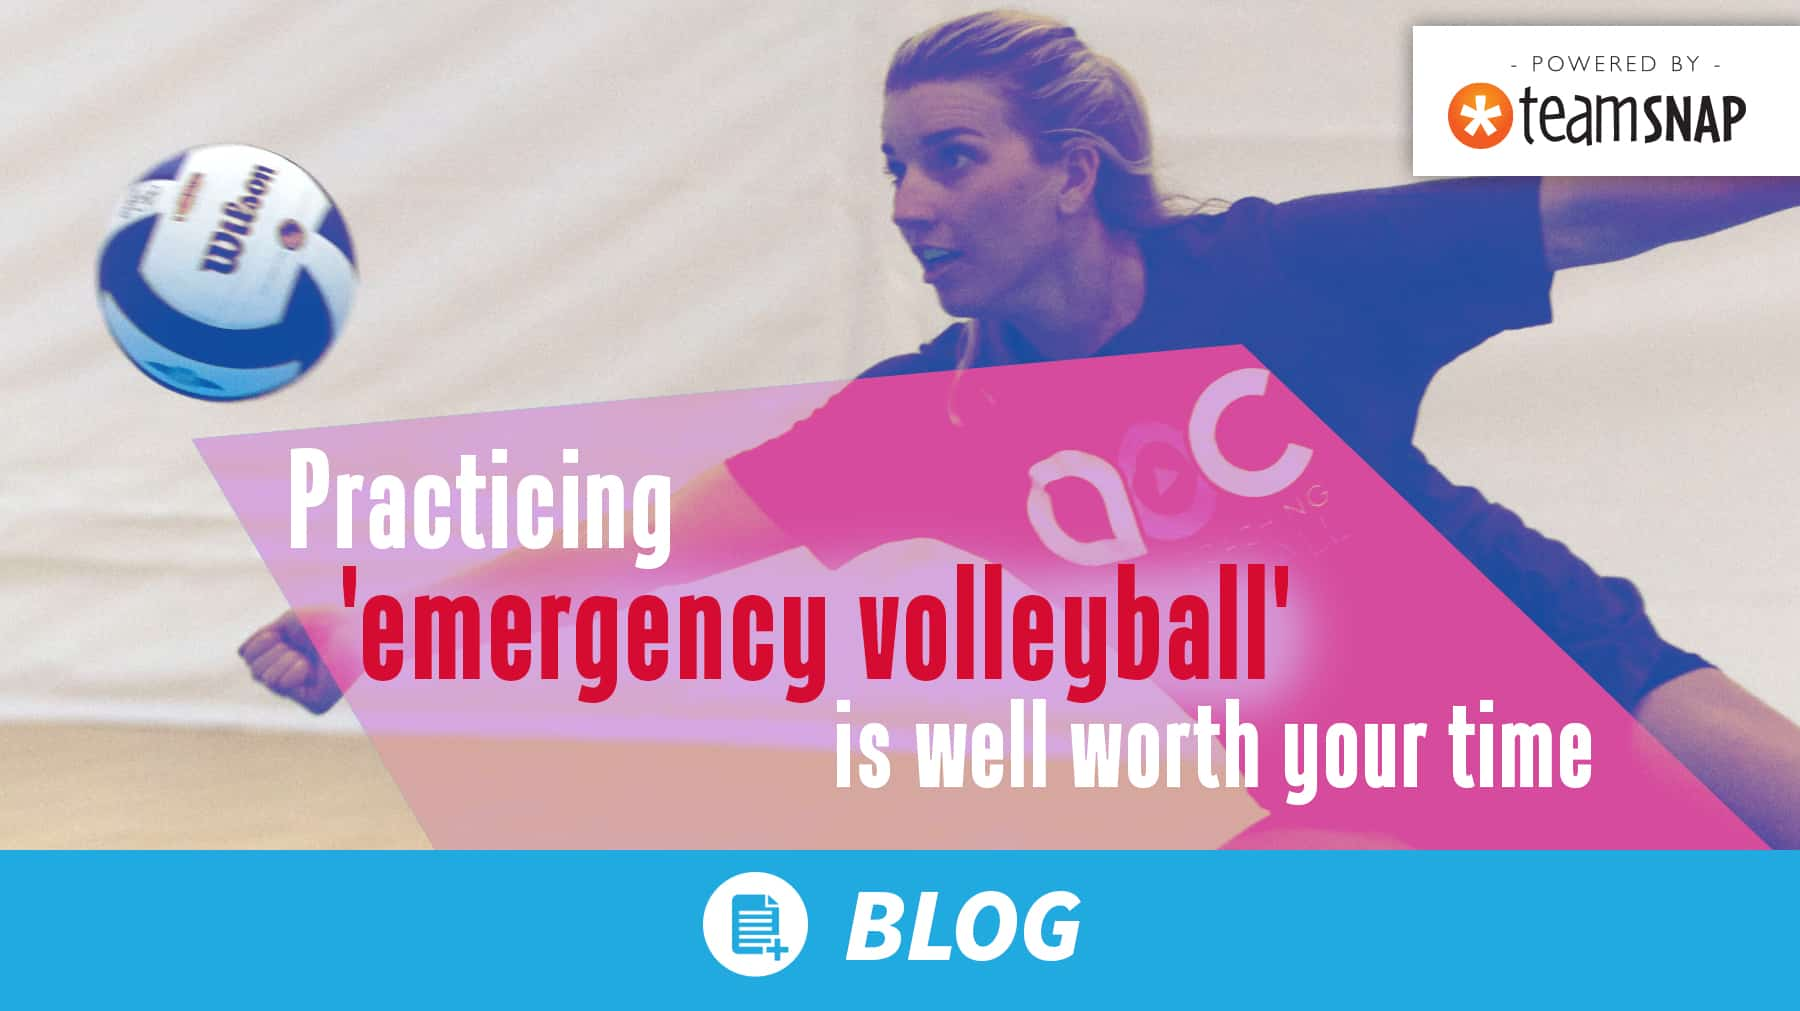 Practicing 'emergency volleyball' is well worth your time